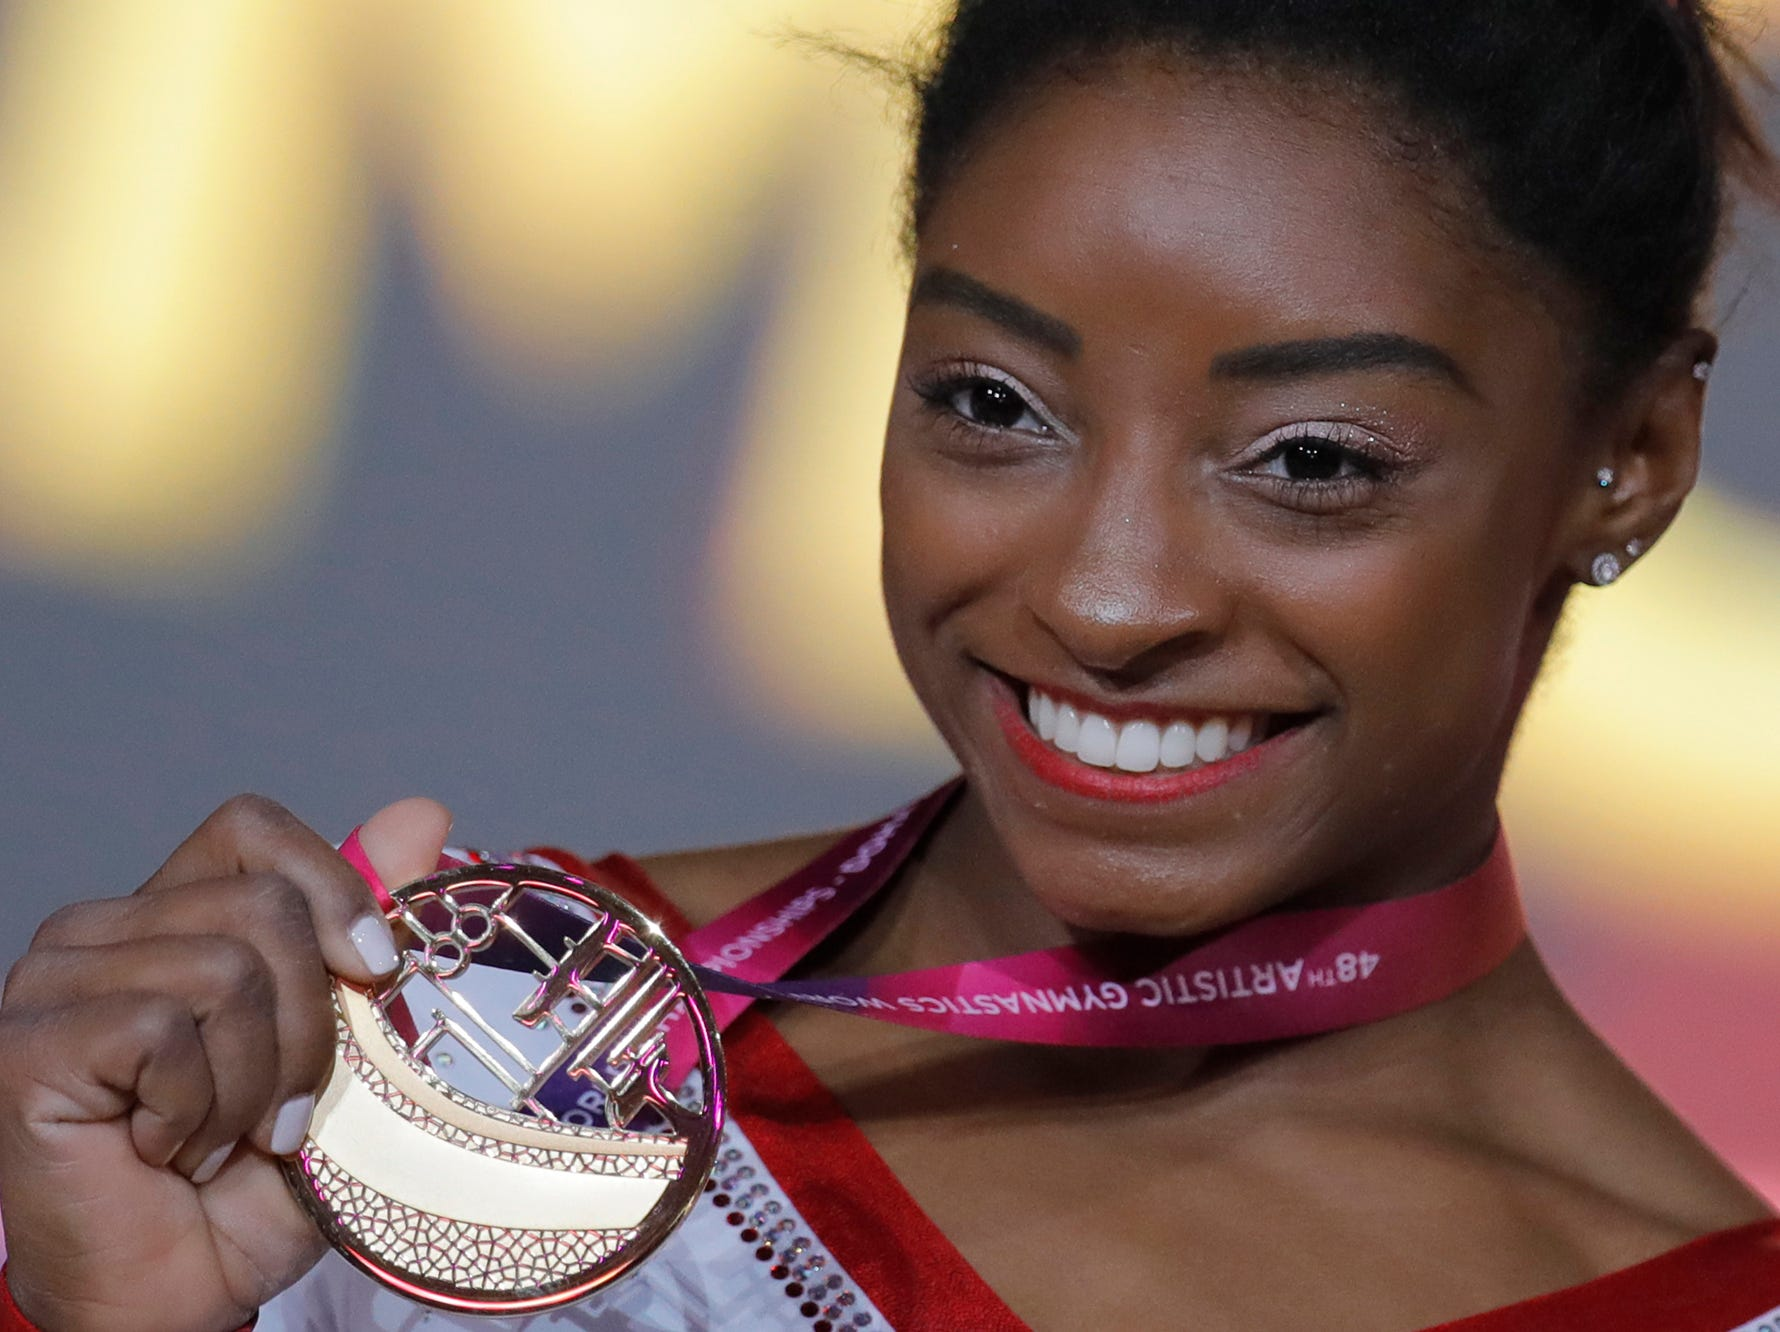 Simone Biles of the U.S. shows her gold medal after the women's vault final on the first day of the apparatus finals of the of the Gymnastics World Chamionships at the Aspire Dome in Doha, Qatar, Friday, Nov. 2, 2018. (AP Photo/Vadim Ghirda)